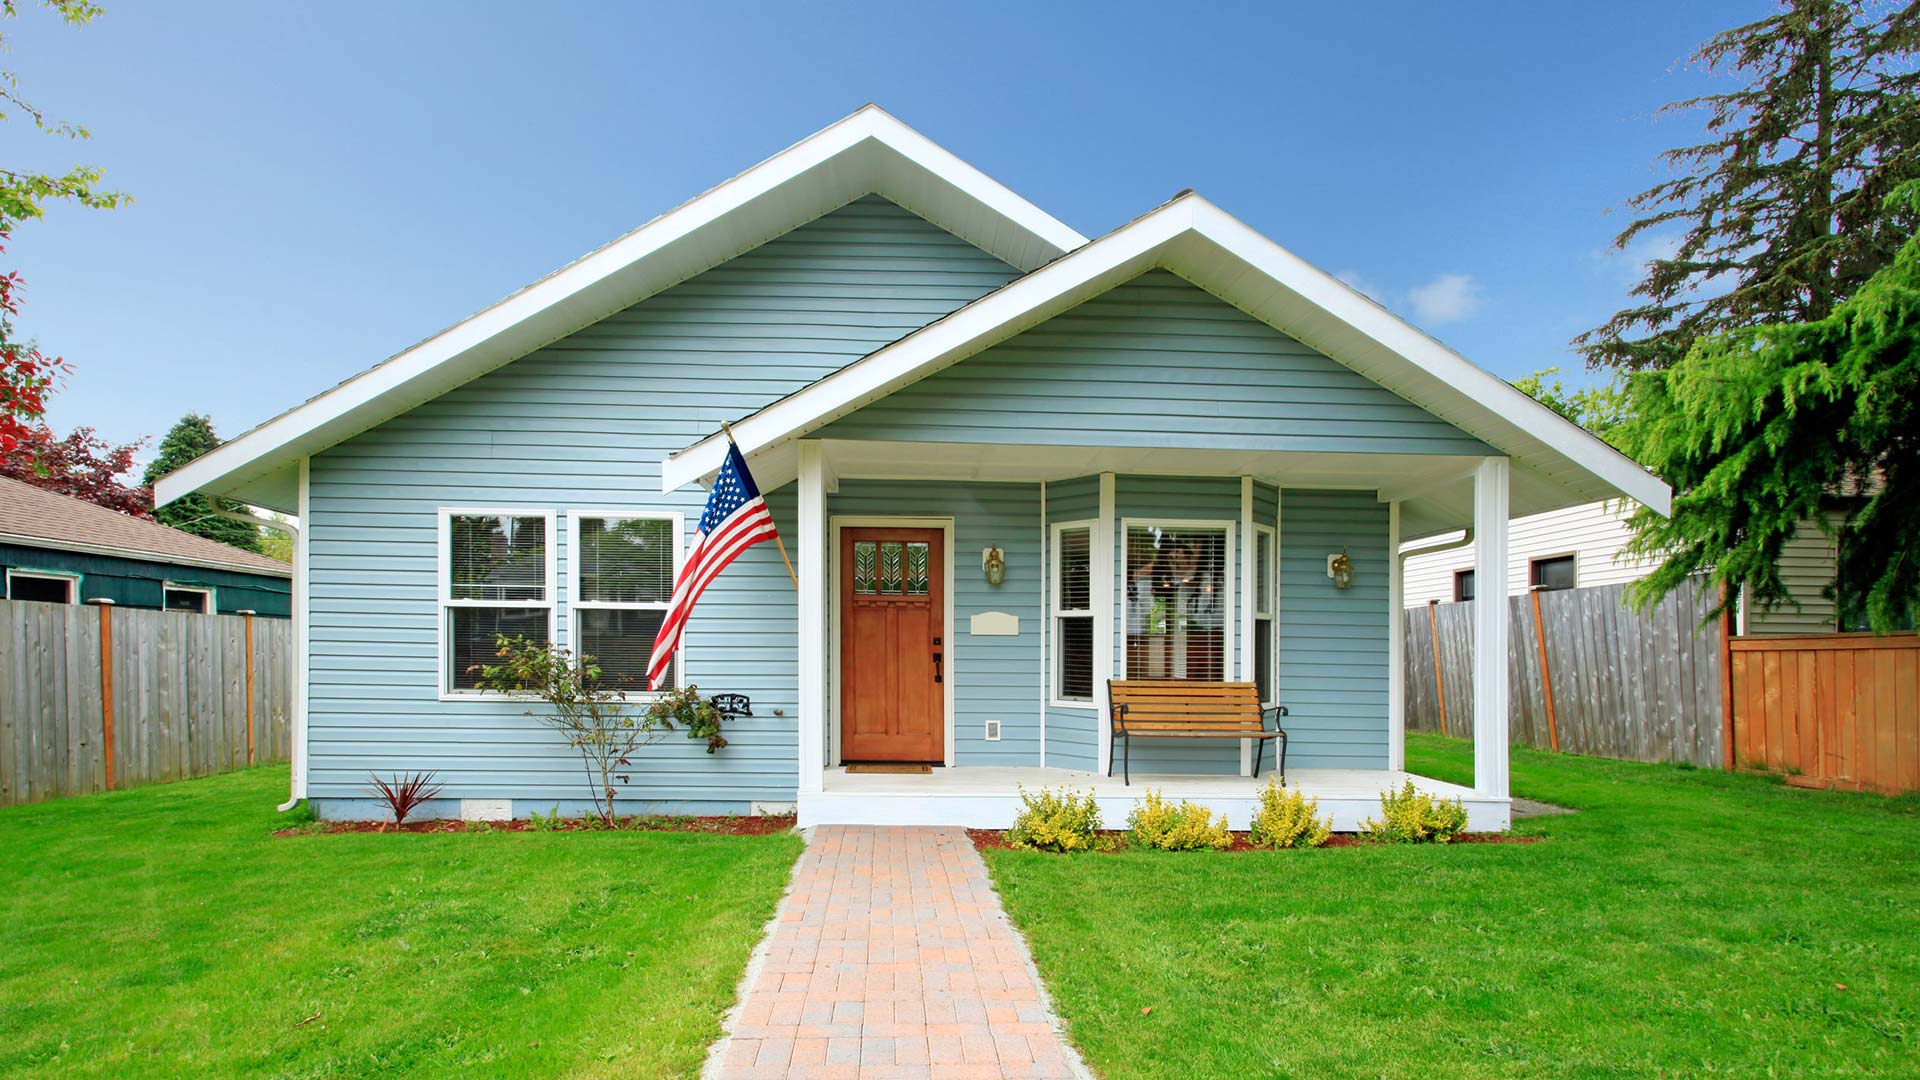 How To Buy A House With $0 Down In 2020: First Time Buyer